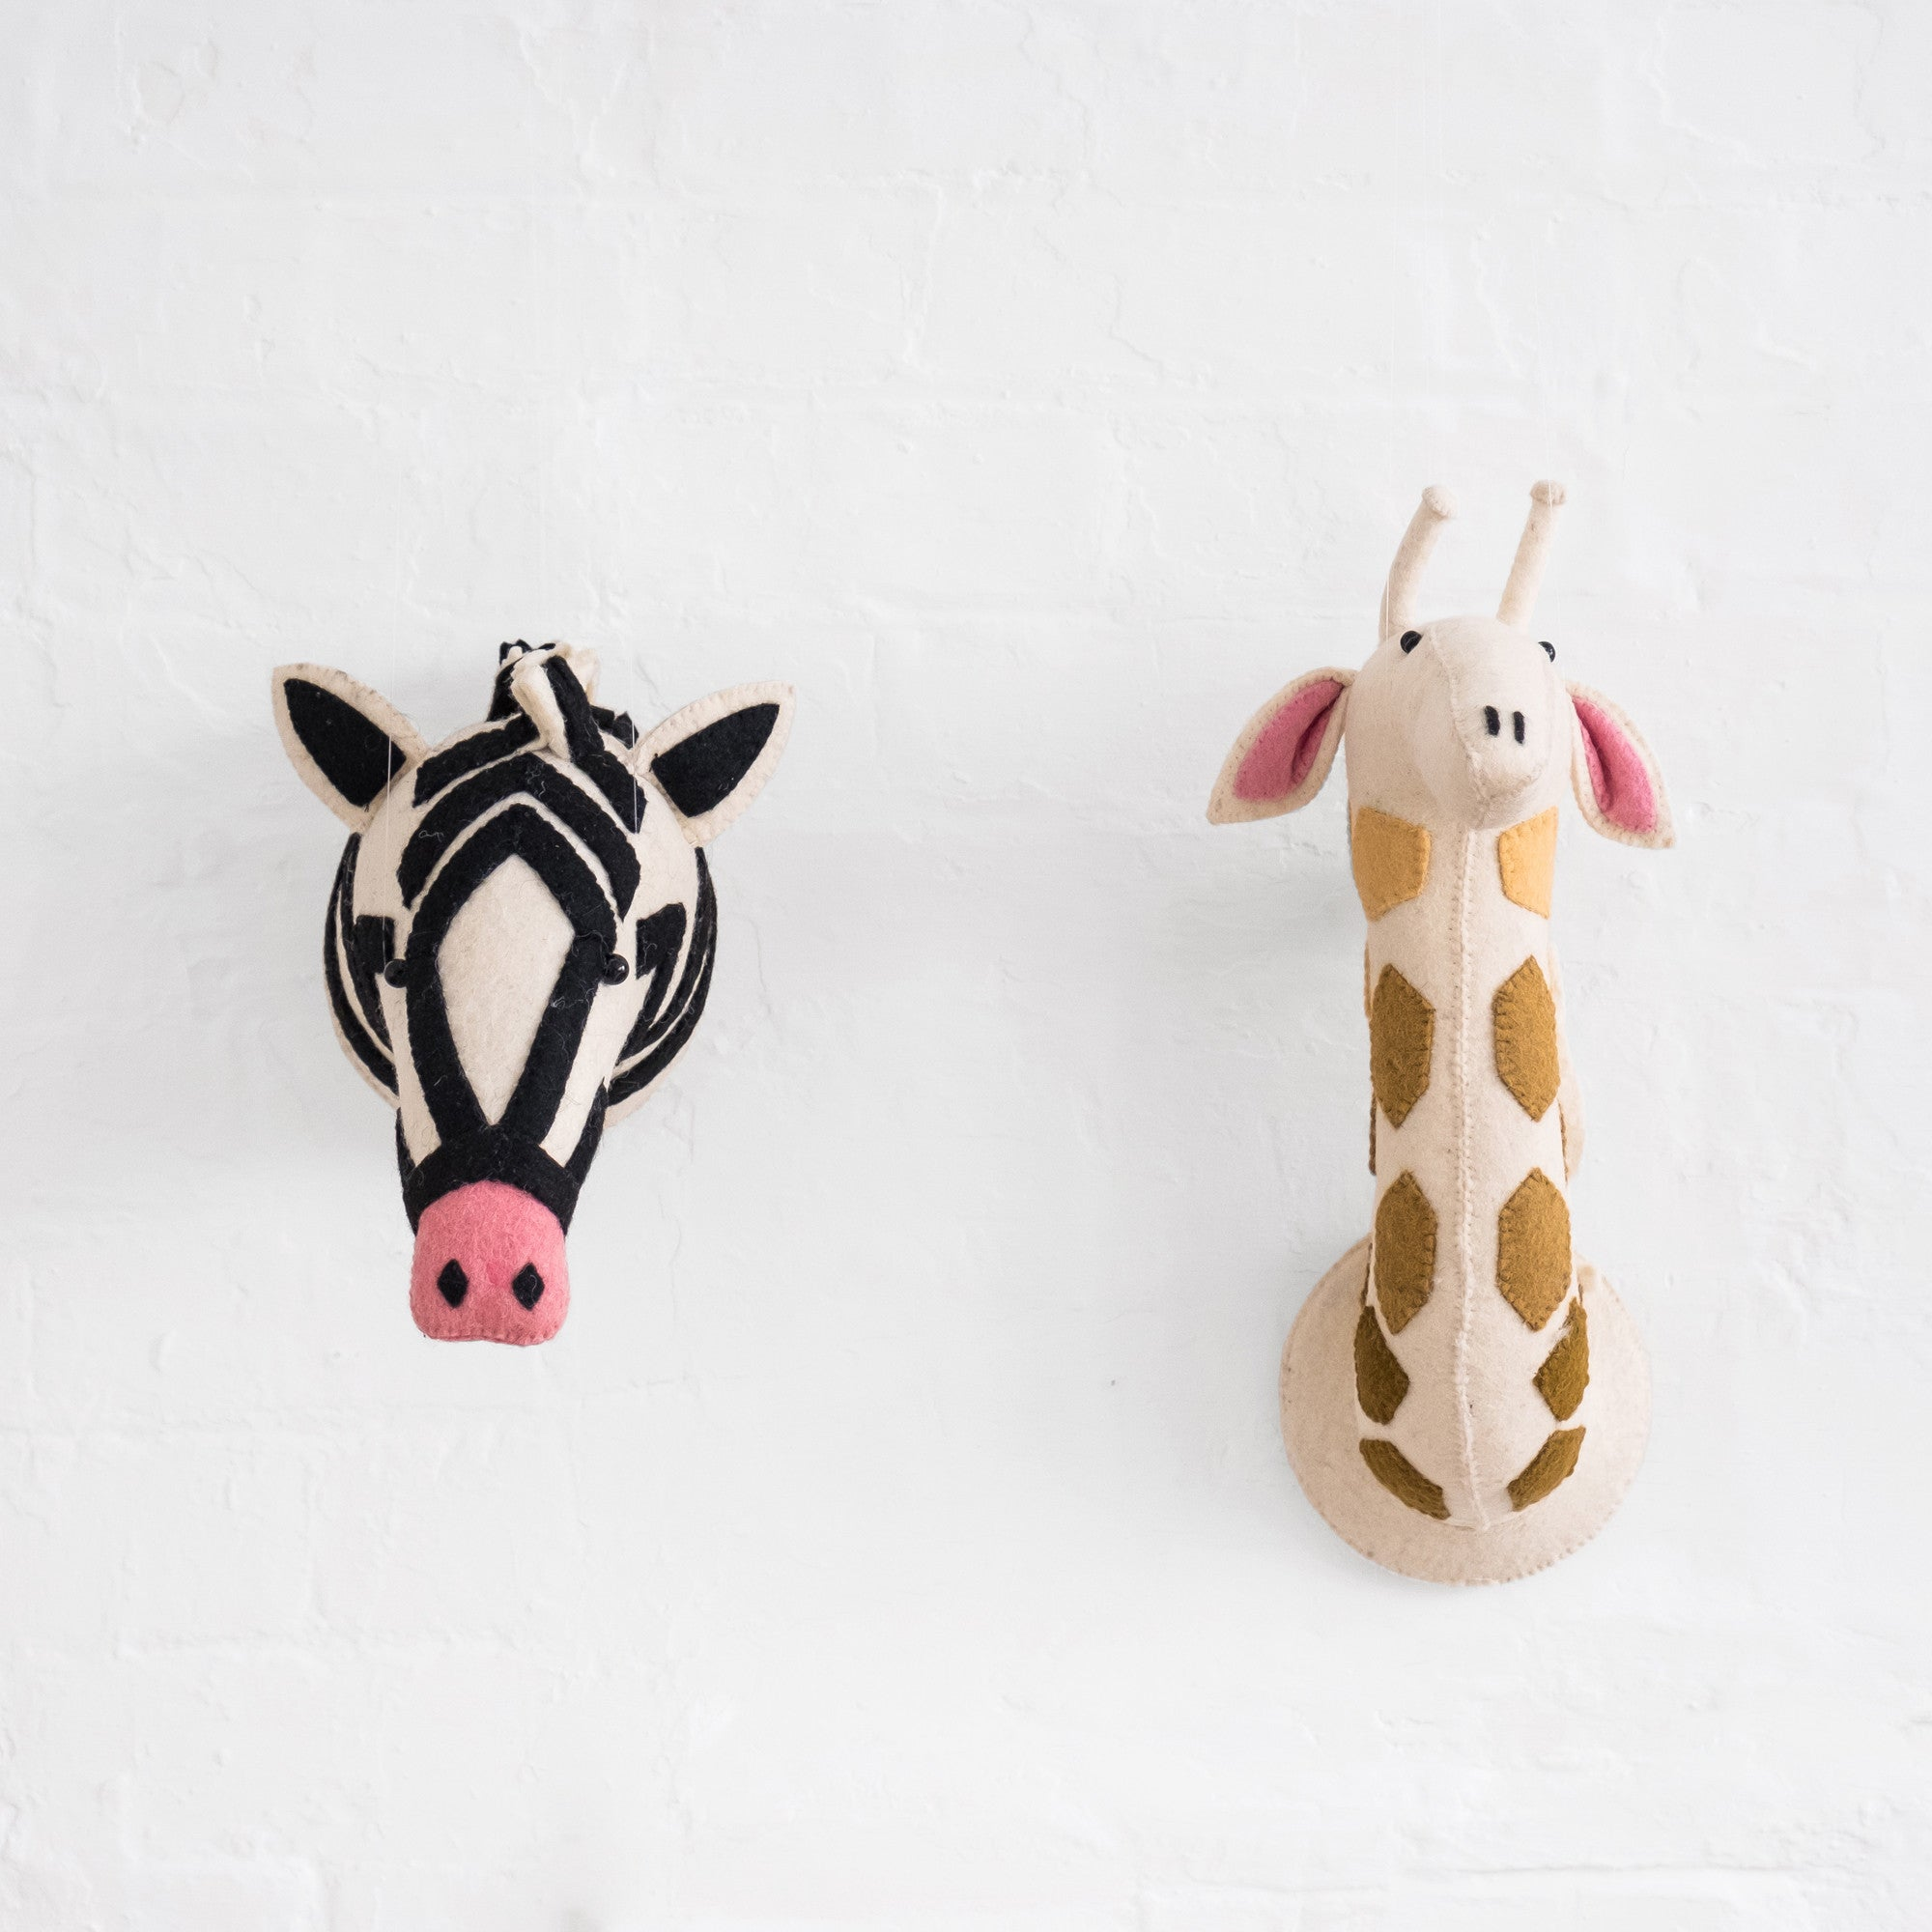 Felt Zebra Head and Felt Giraffe Head by Fiona Walker England, available at Bobby Rabbit.